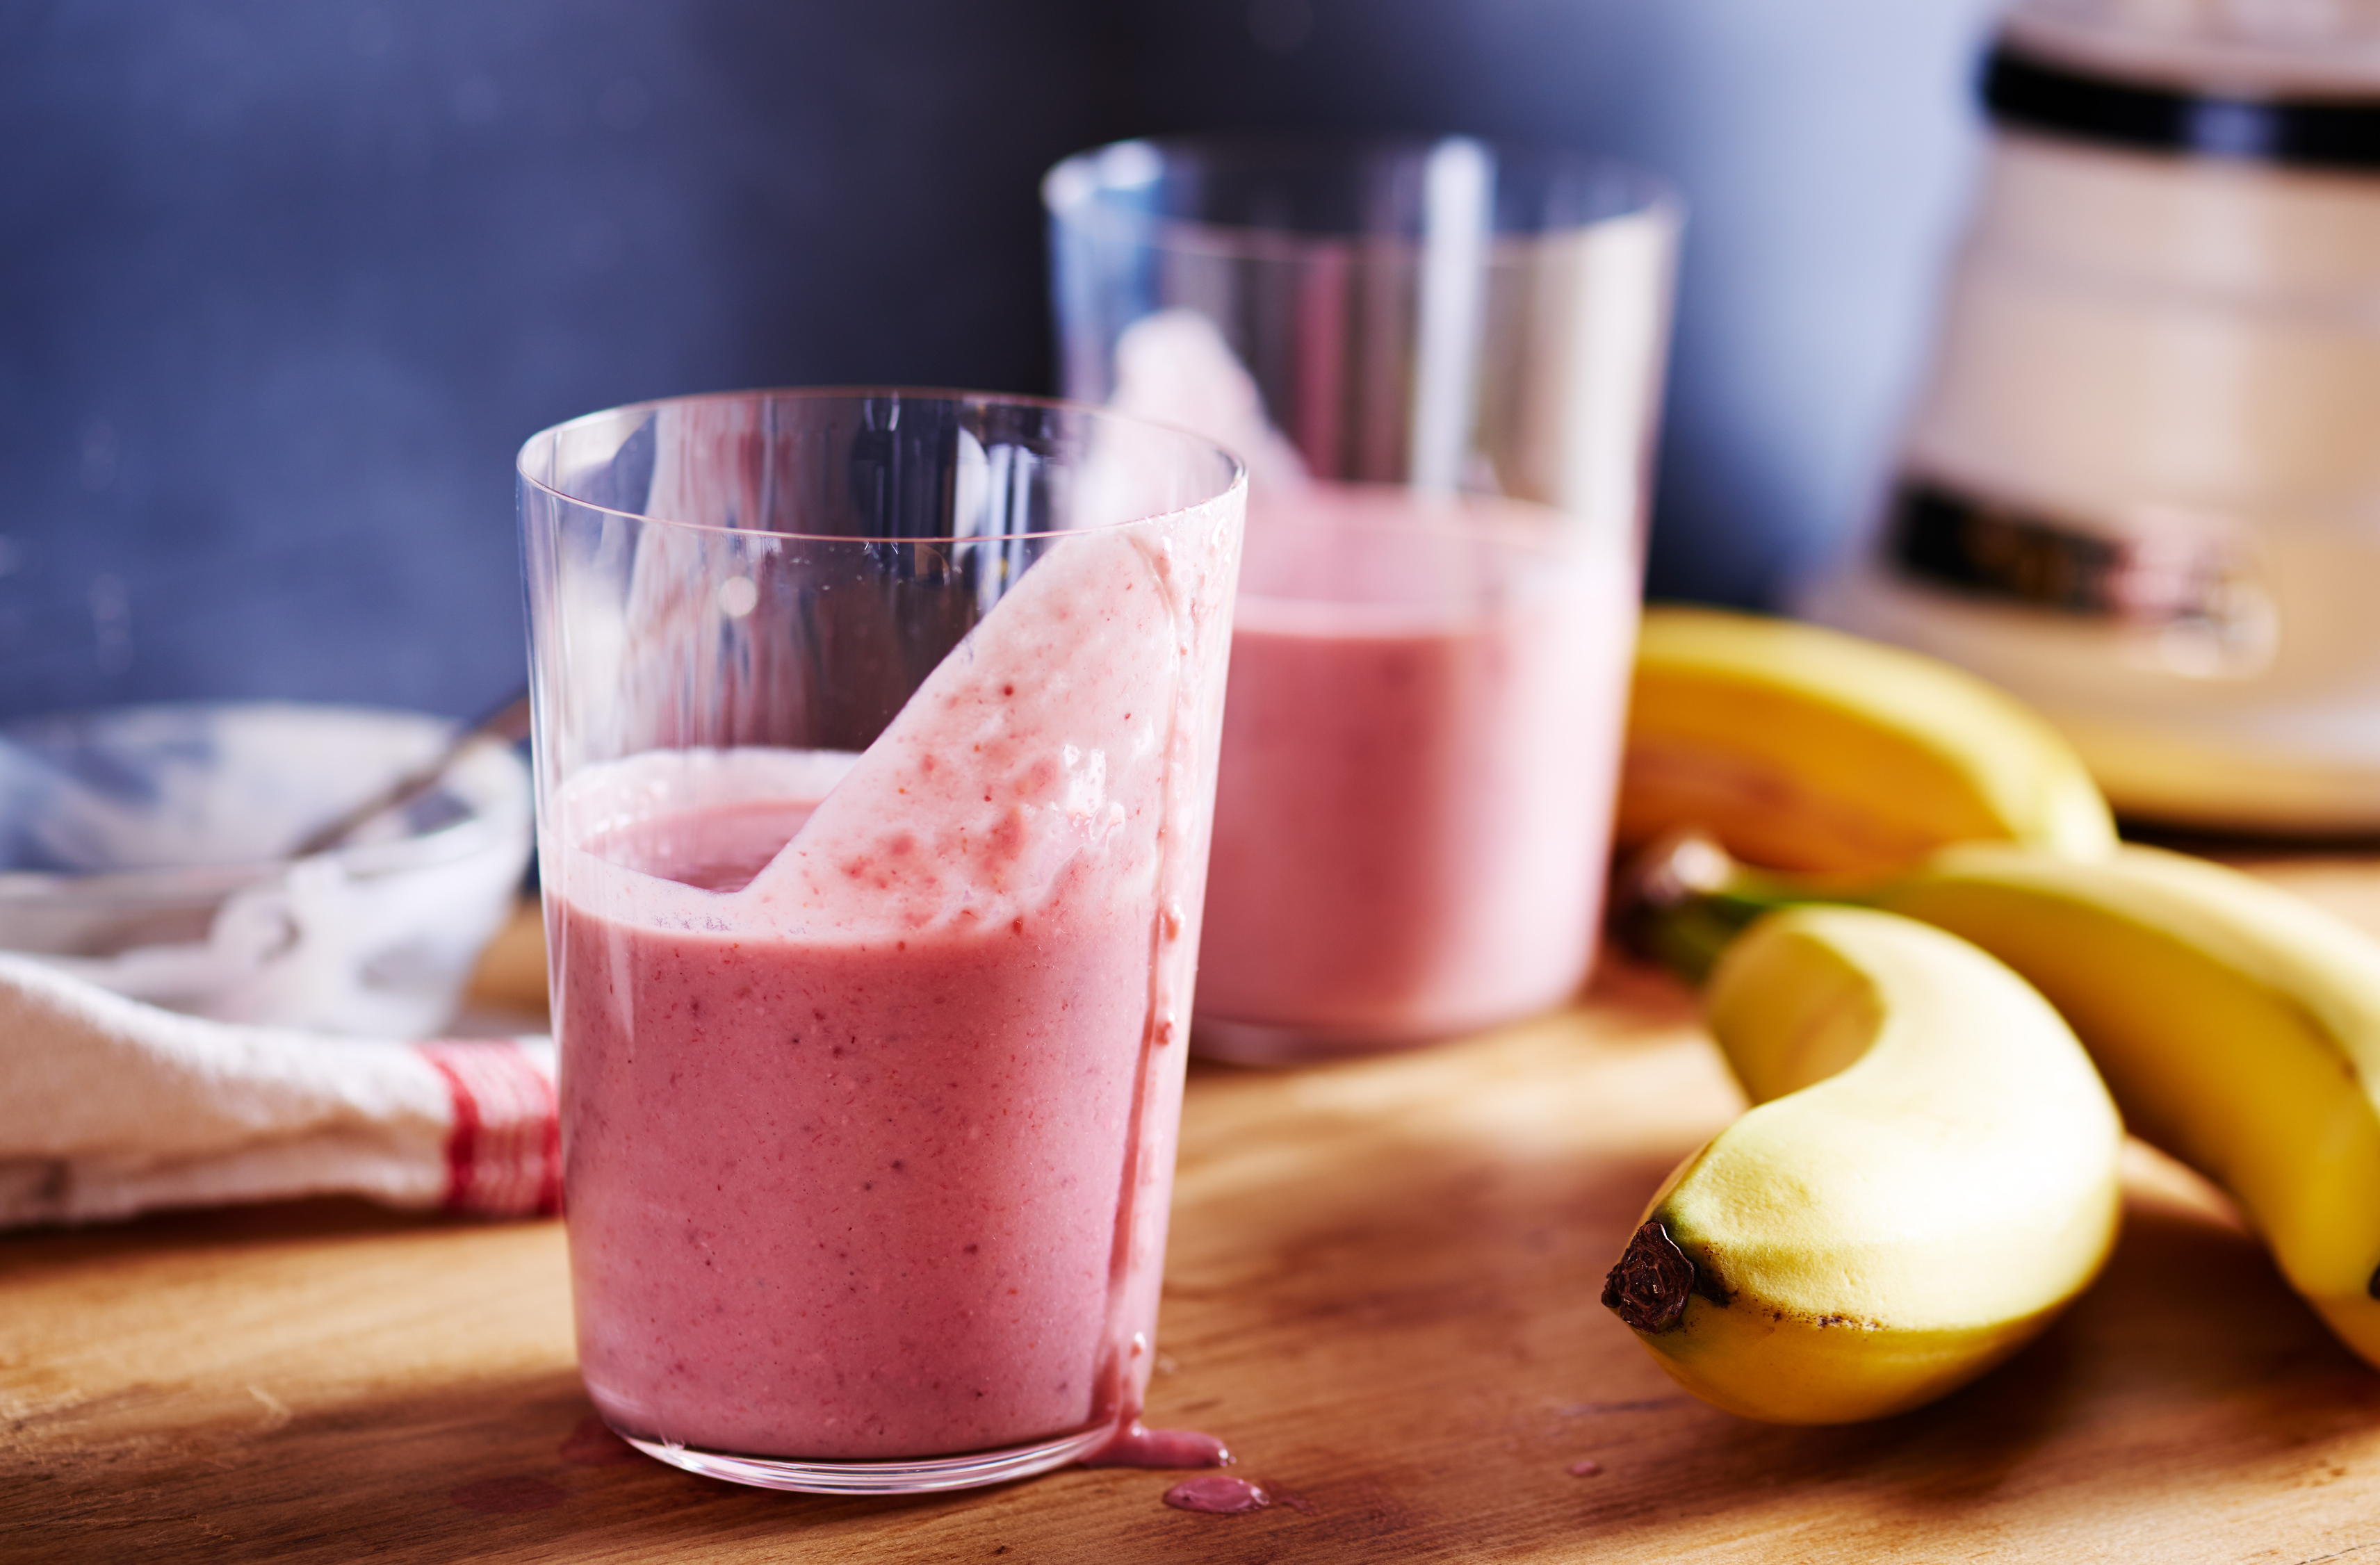 2 glasses of strawberry cashew breakfast shake on a table beside 2 bananas